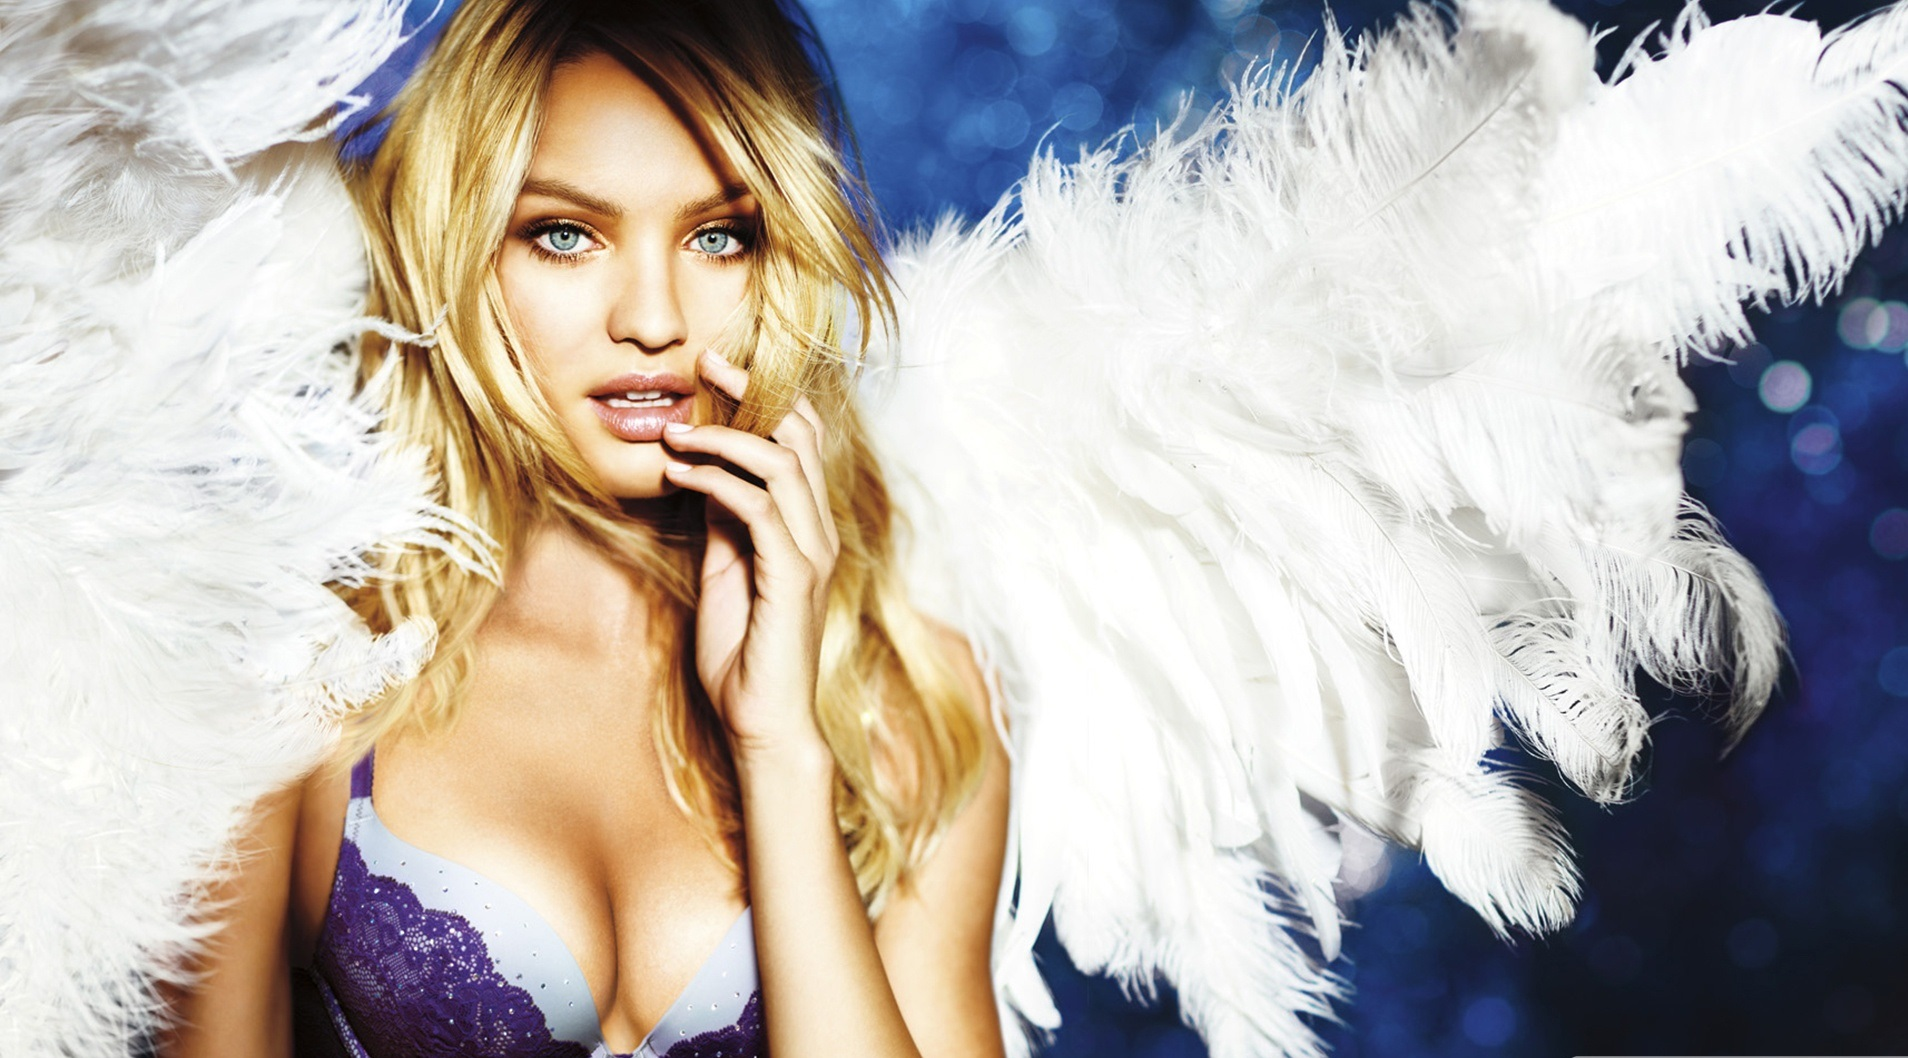 candice-swanepoel-photos